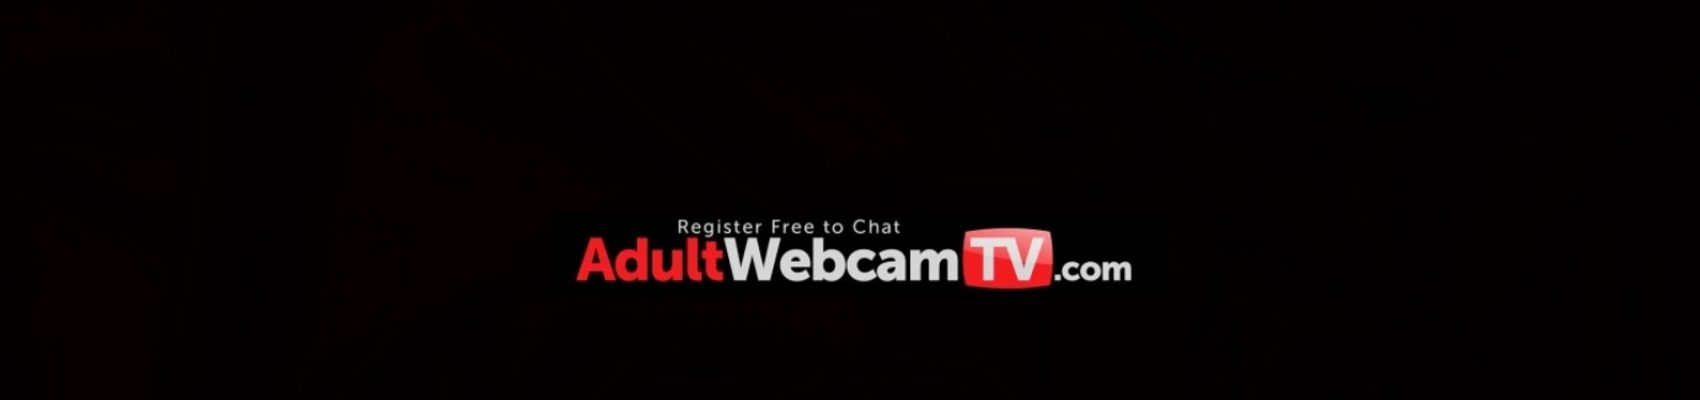 Adult Webcam TV